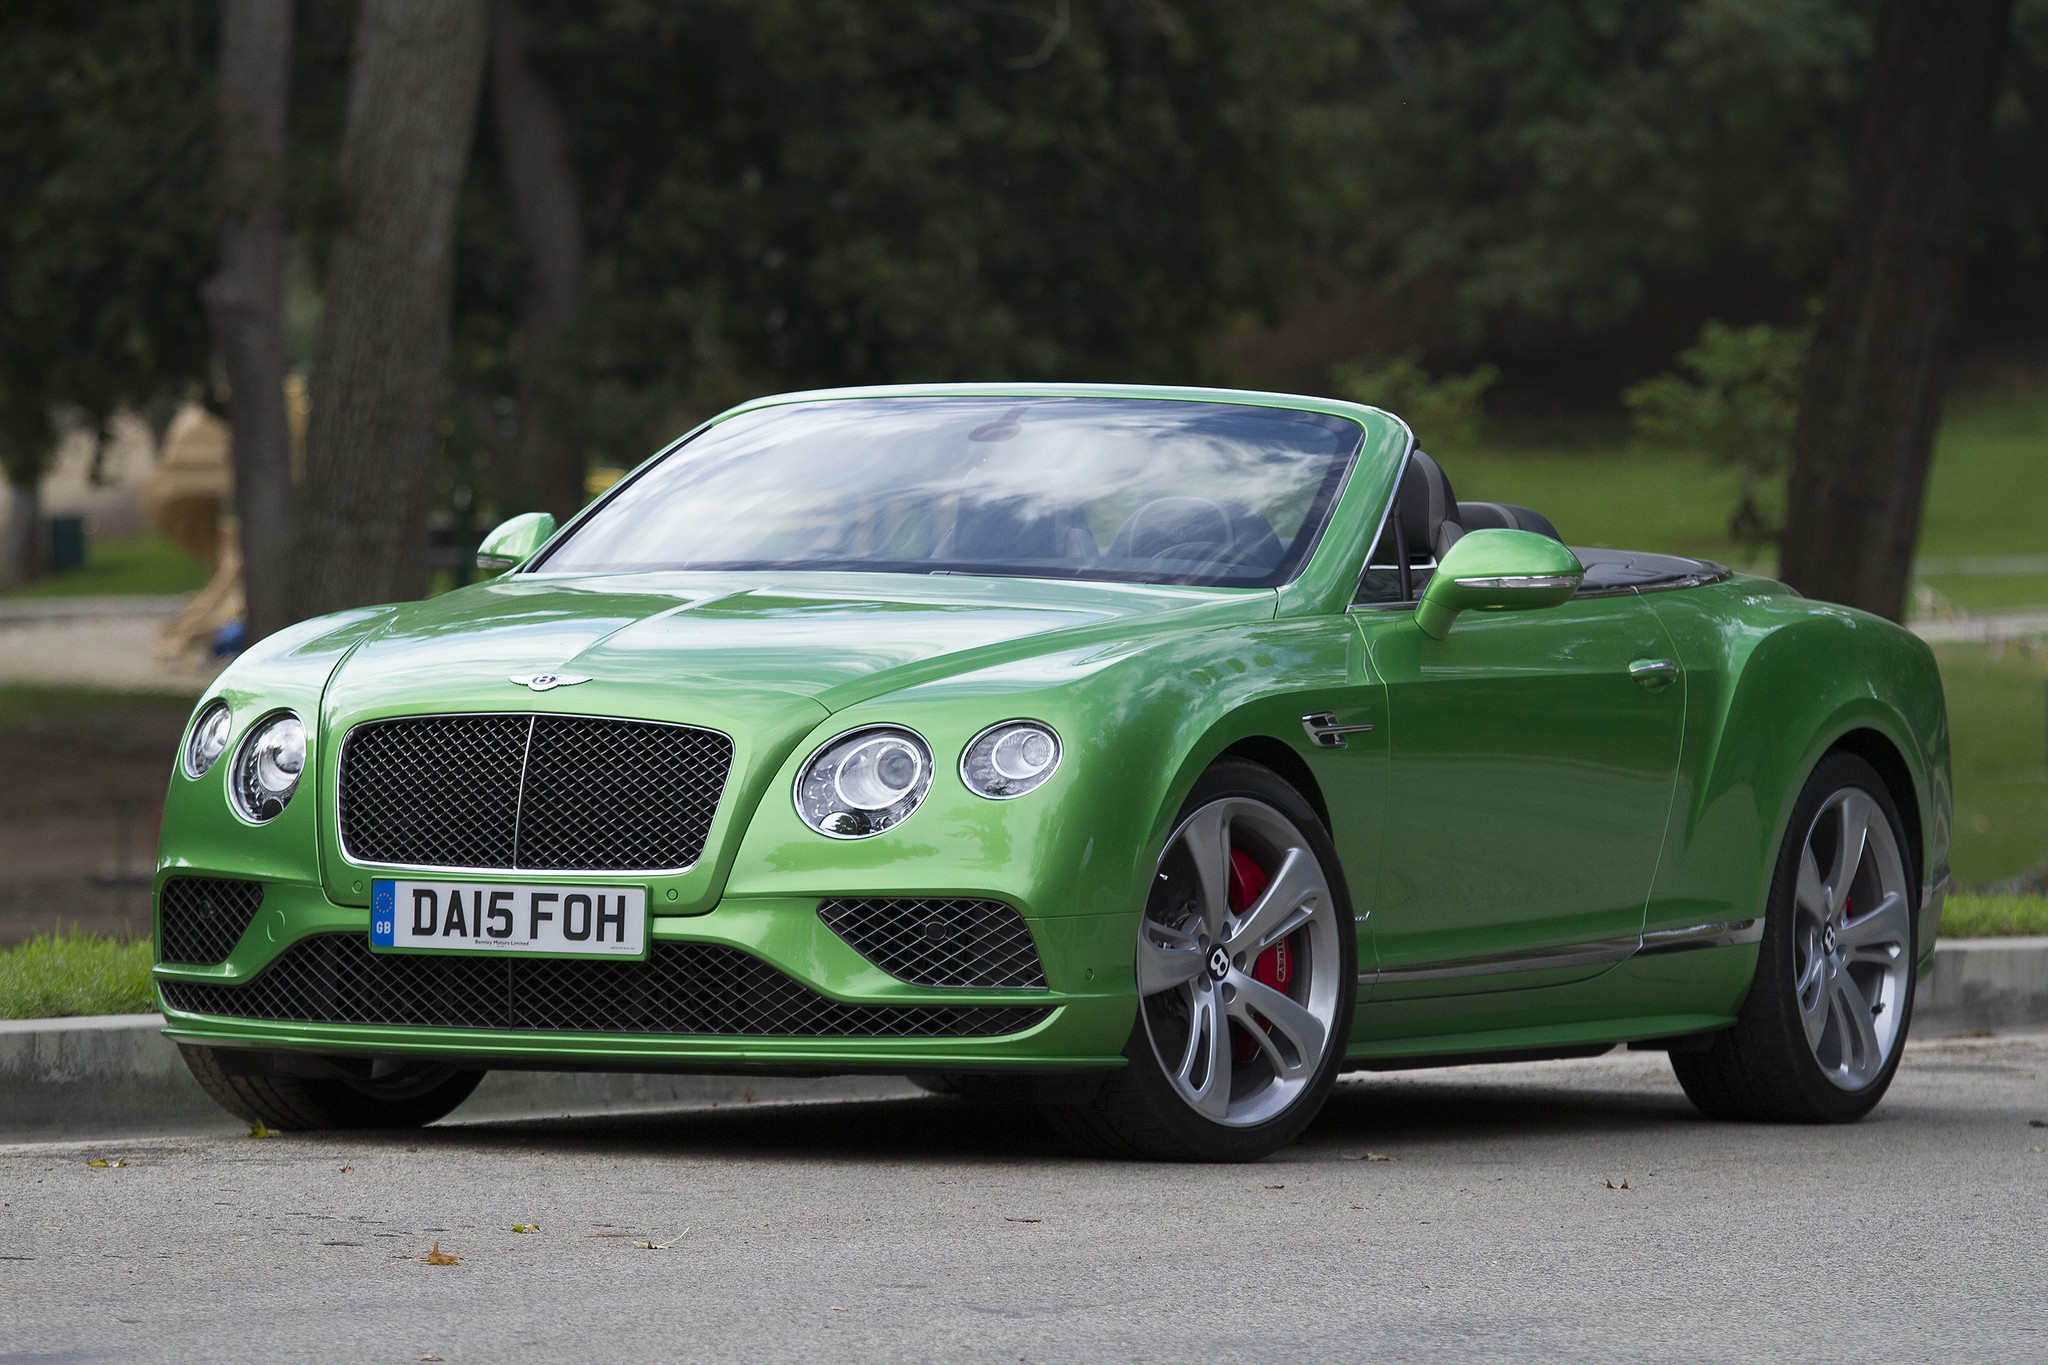 review 2016 bentley continental gt speed gets you there quickly quietly in style la times. Black Bedroom Furniture Sets. Home Design Ideas